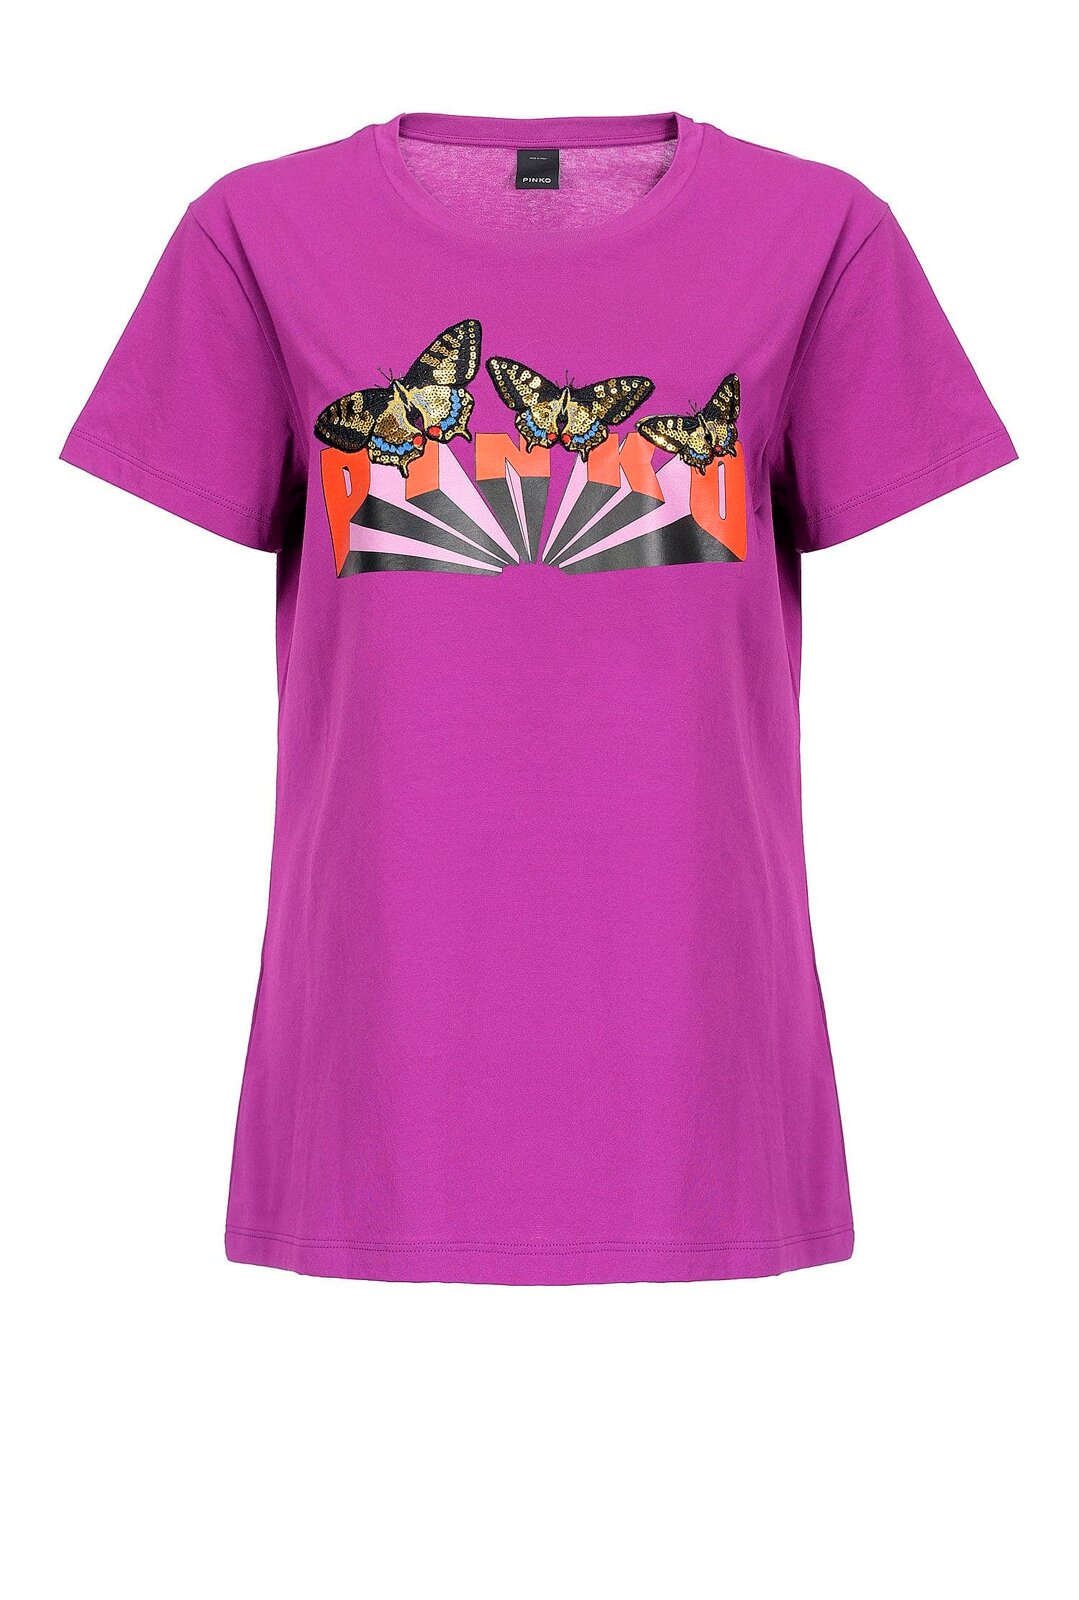 Logo T-Shirt With Butterflies - Pinko